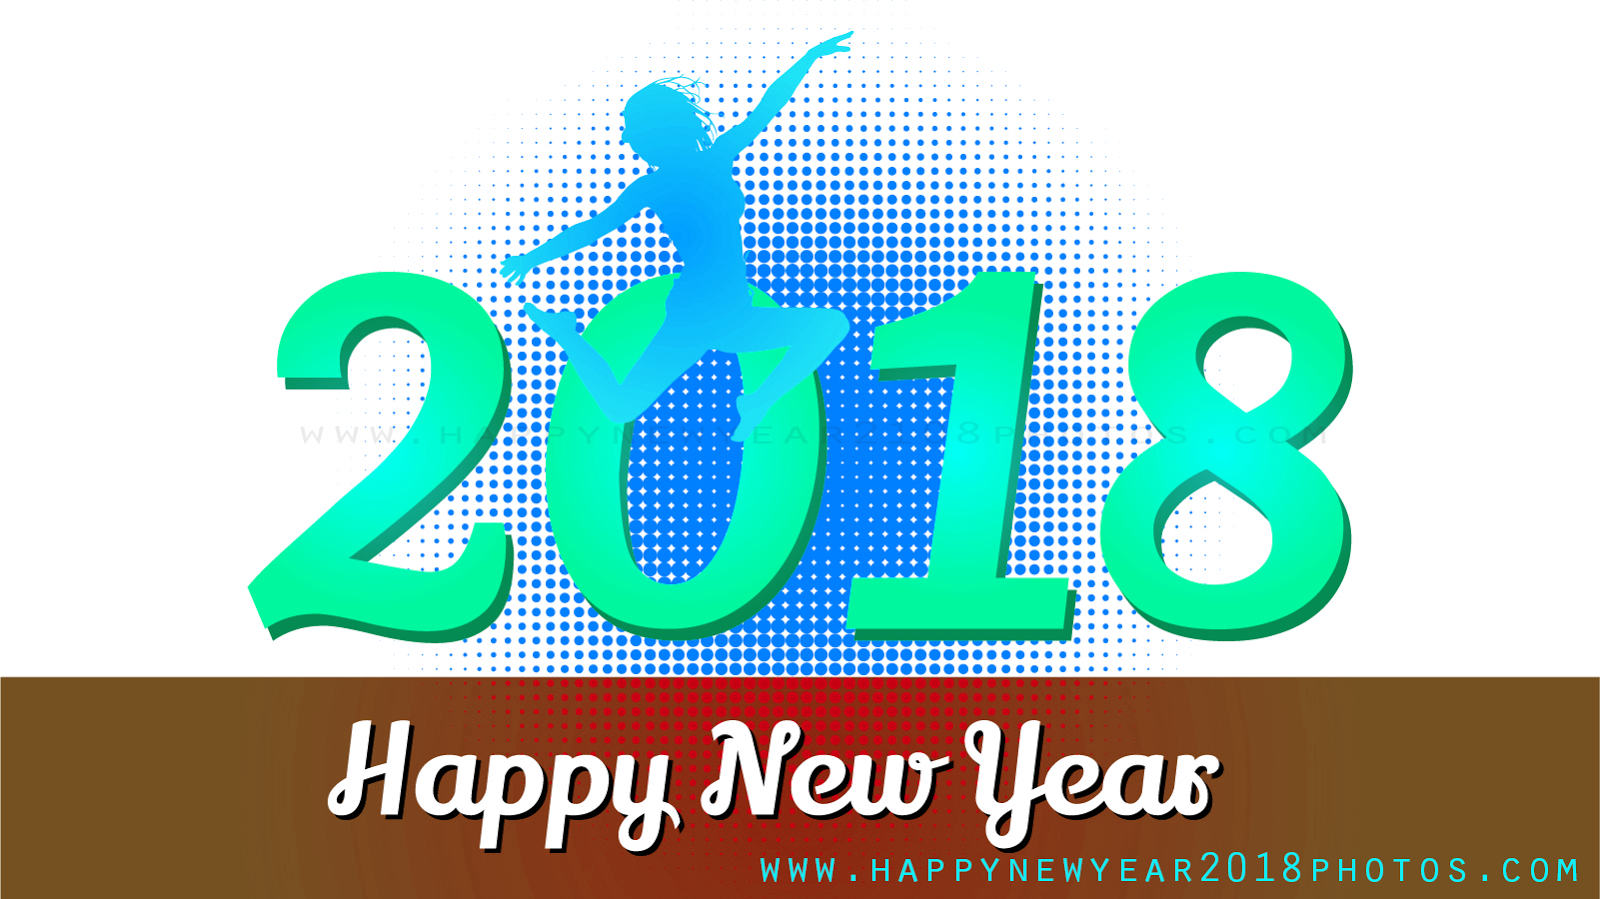 Hello Friends New Year Will Comesoon Every Body Are Awaiting New Year. All  Whatsapp Users Looking For New Year Photos To Send Their Buddies And Close  Ones.